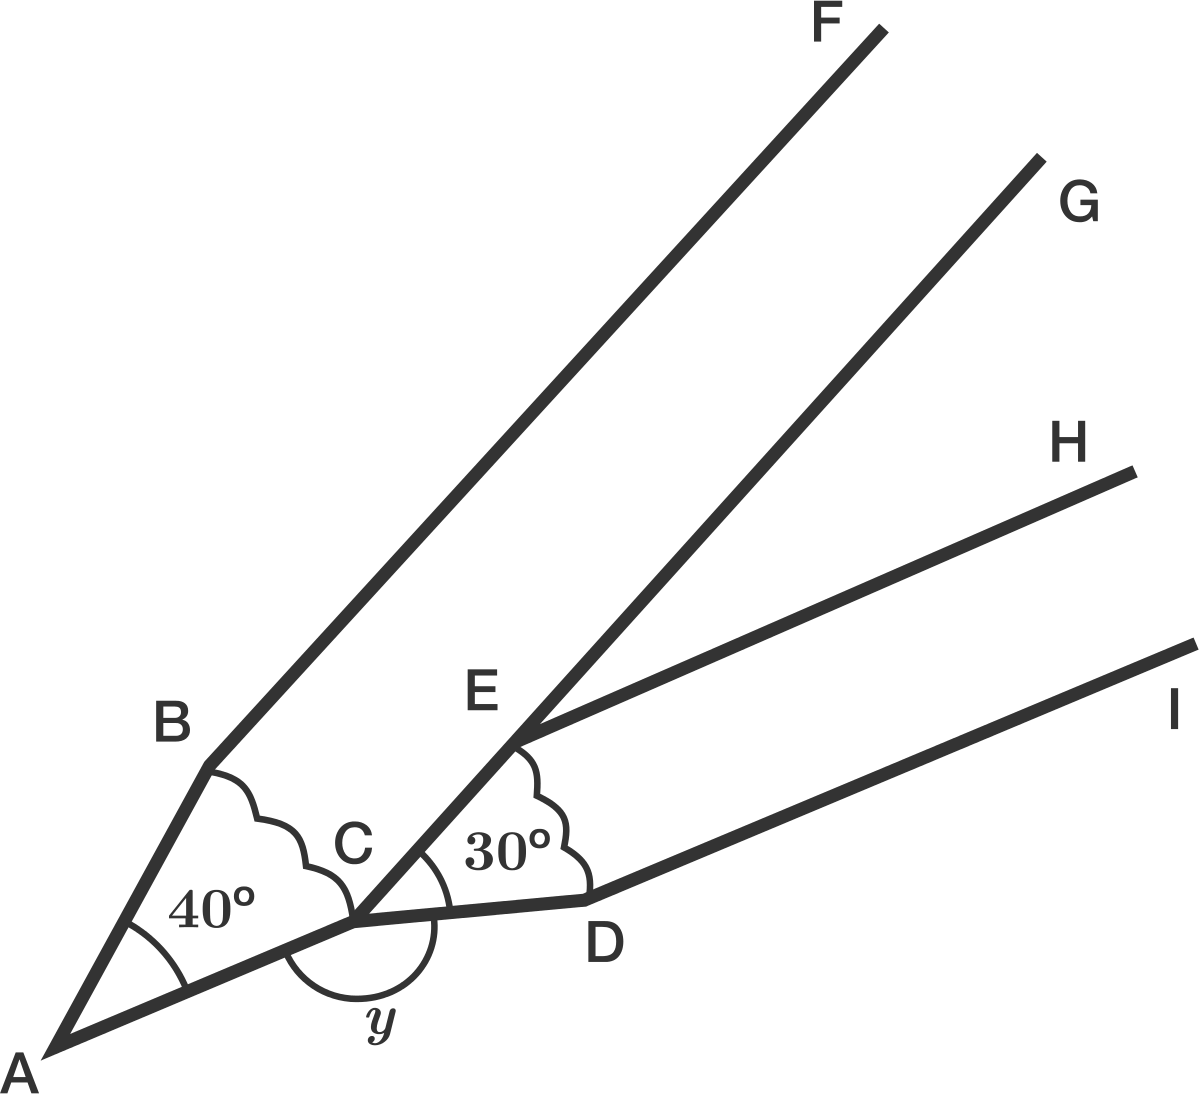 Angles and Lines: Level 2 Challenges Practice Problems